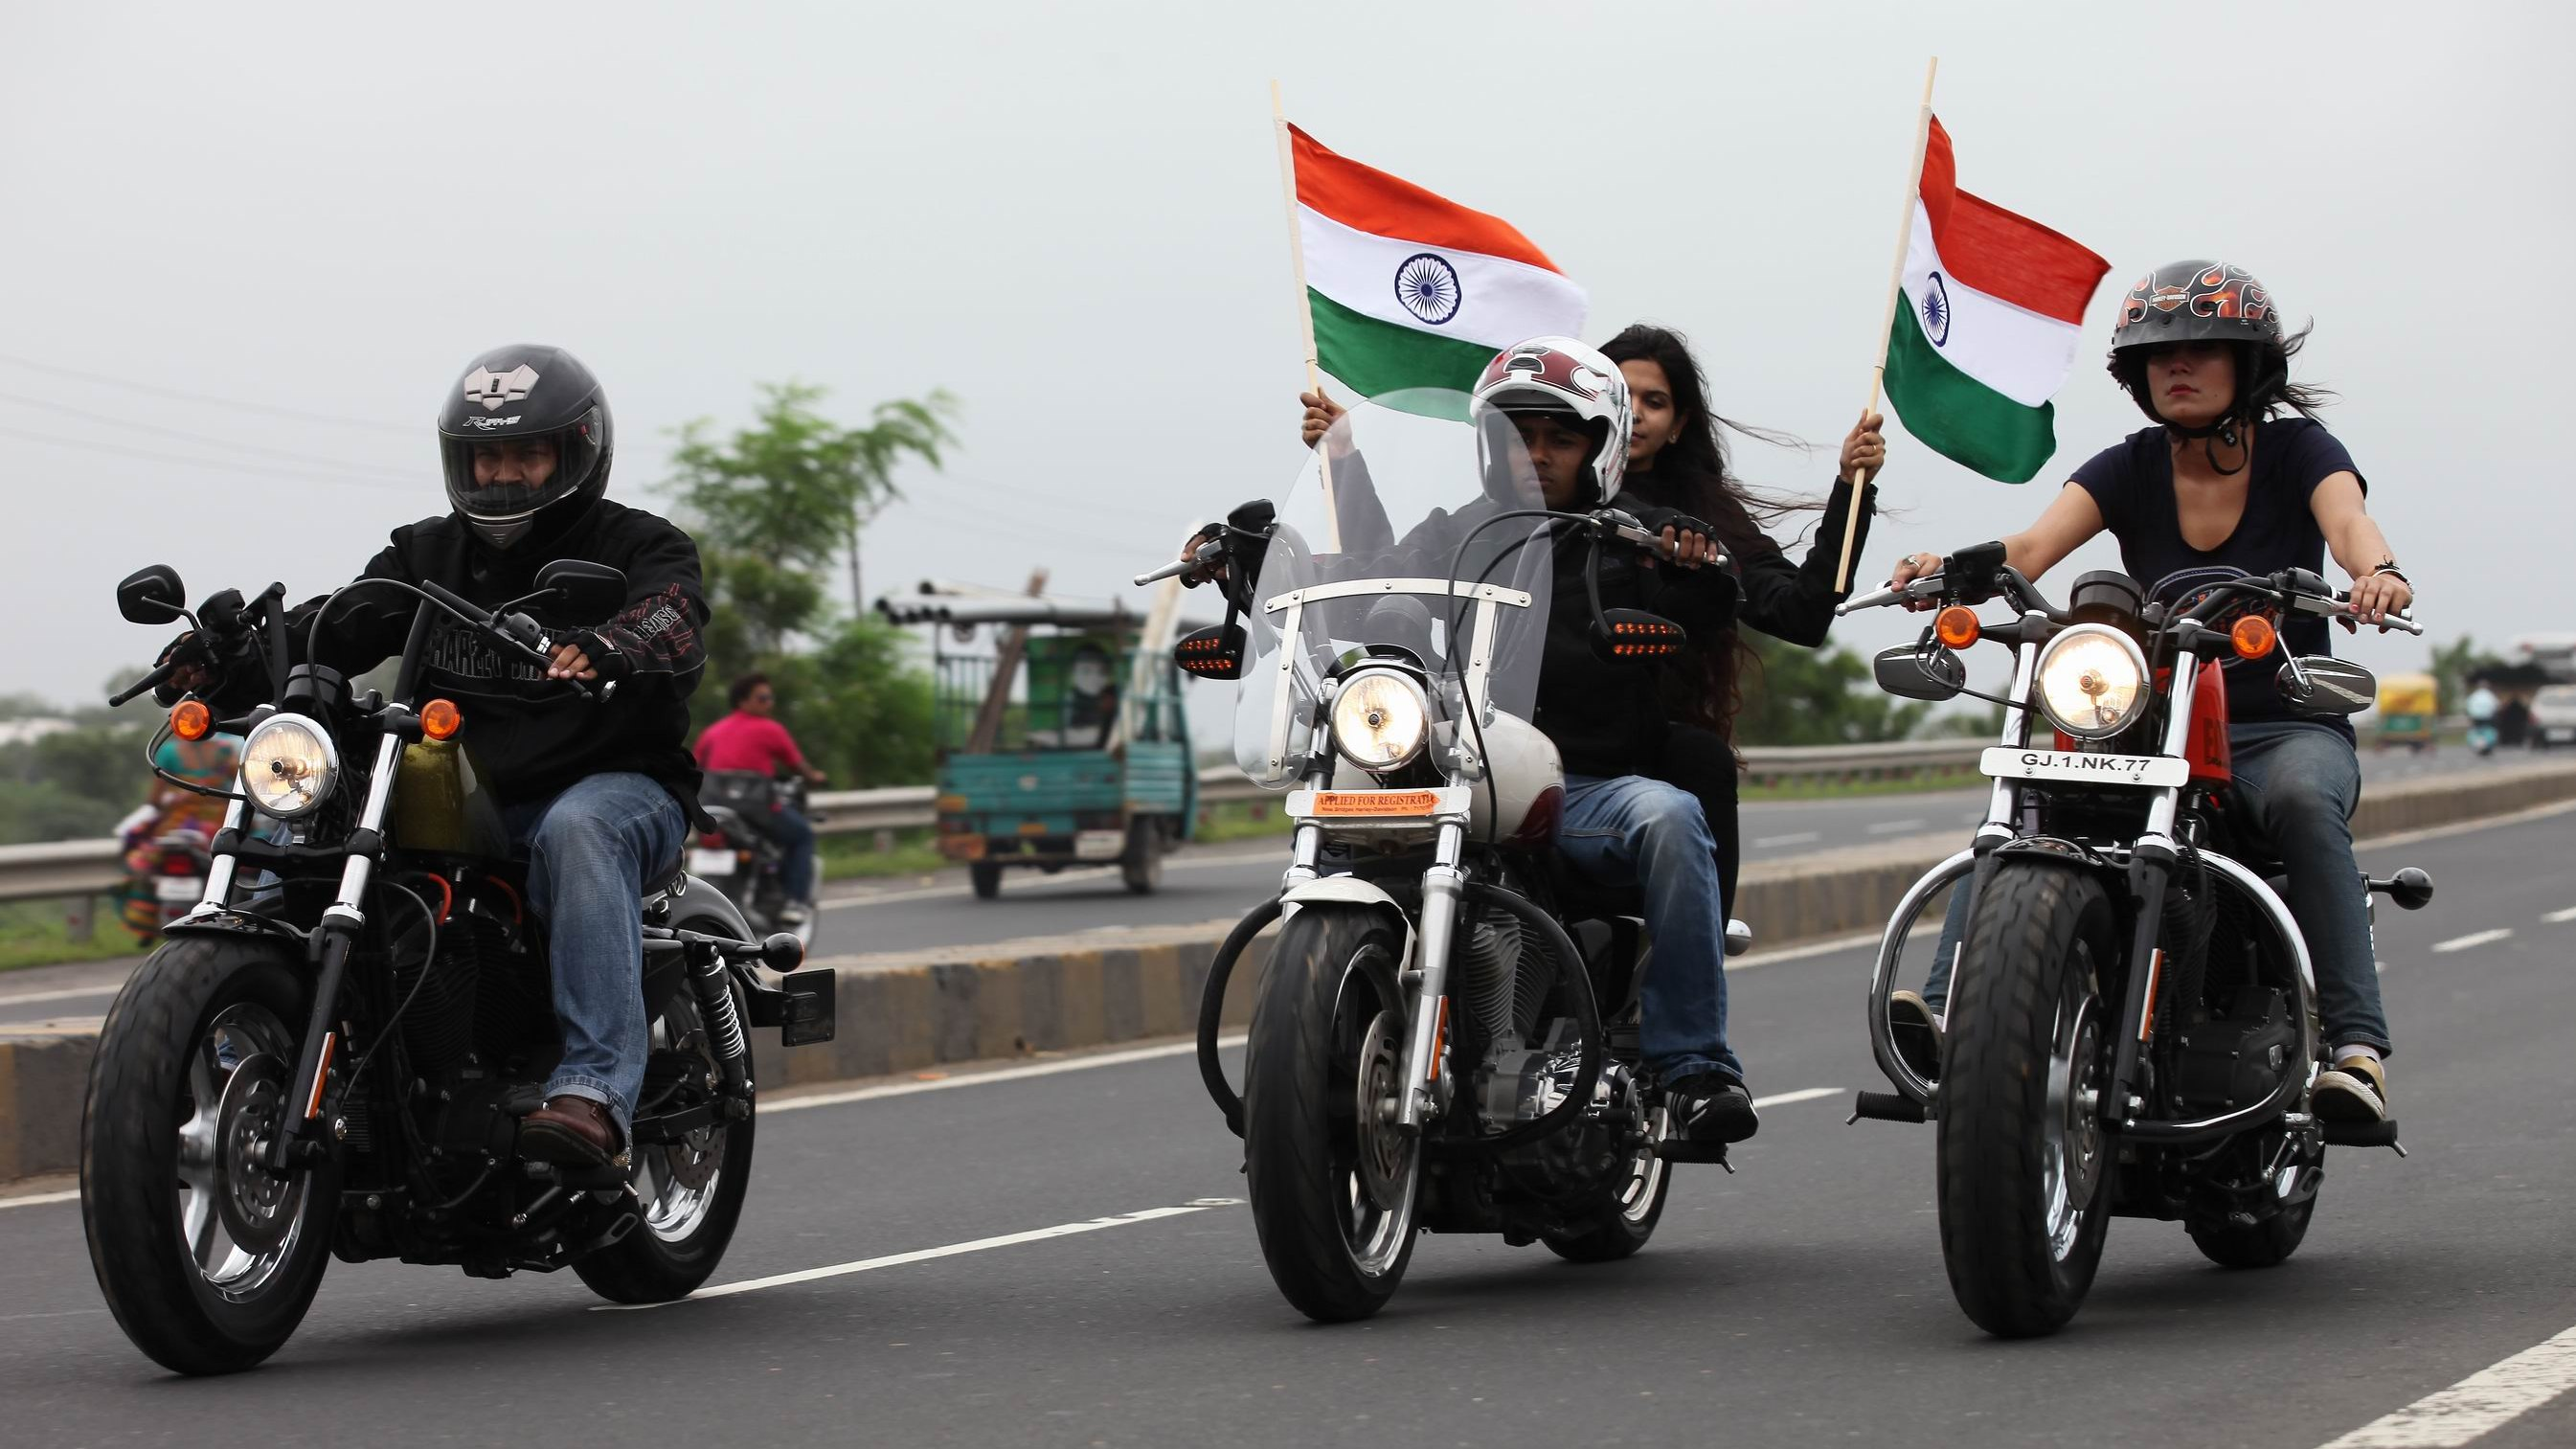 hog india ride 2013 independence day